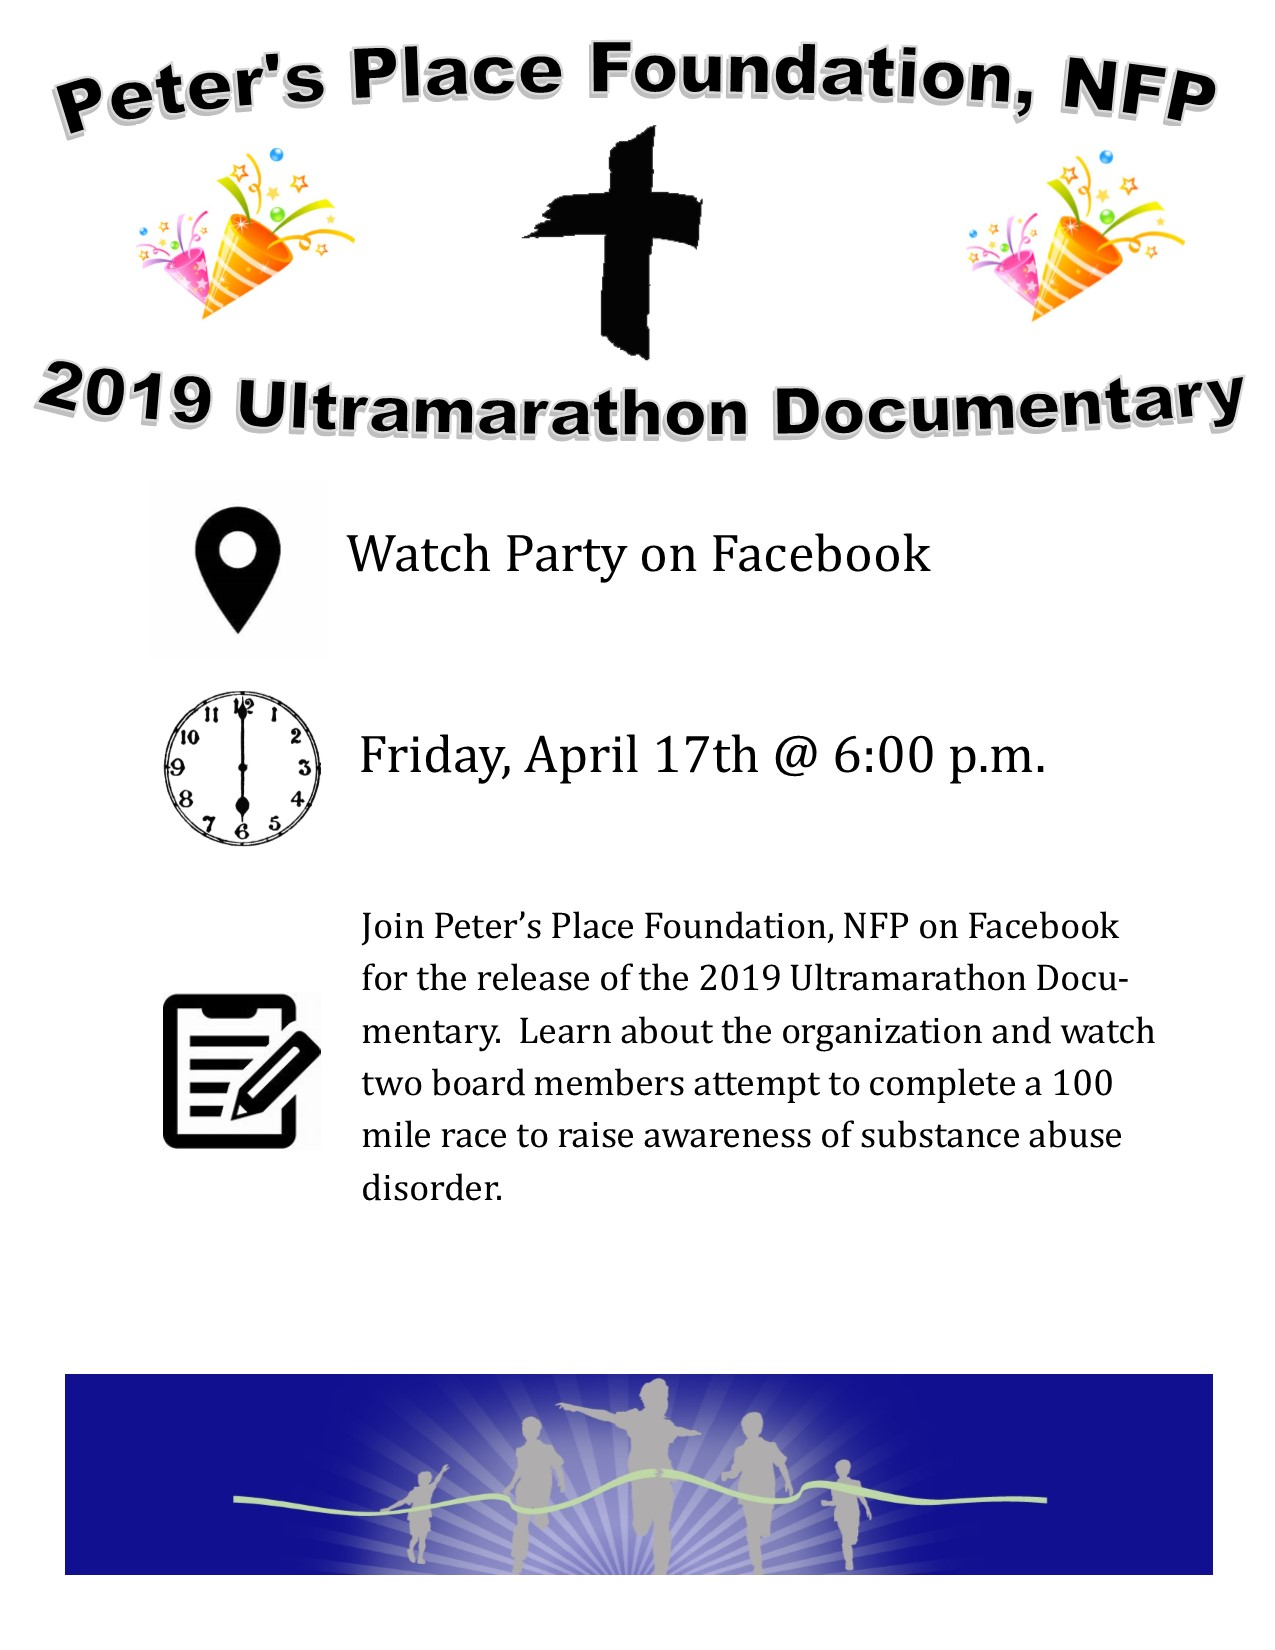 Ultramarathon Documentary for Peter's Place Foundation NFP